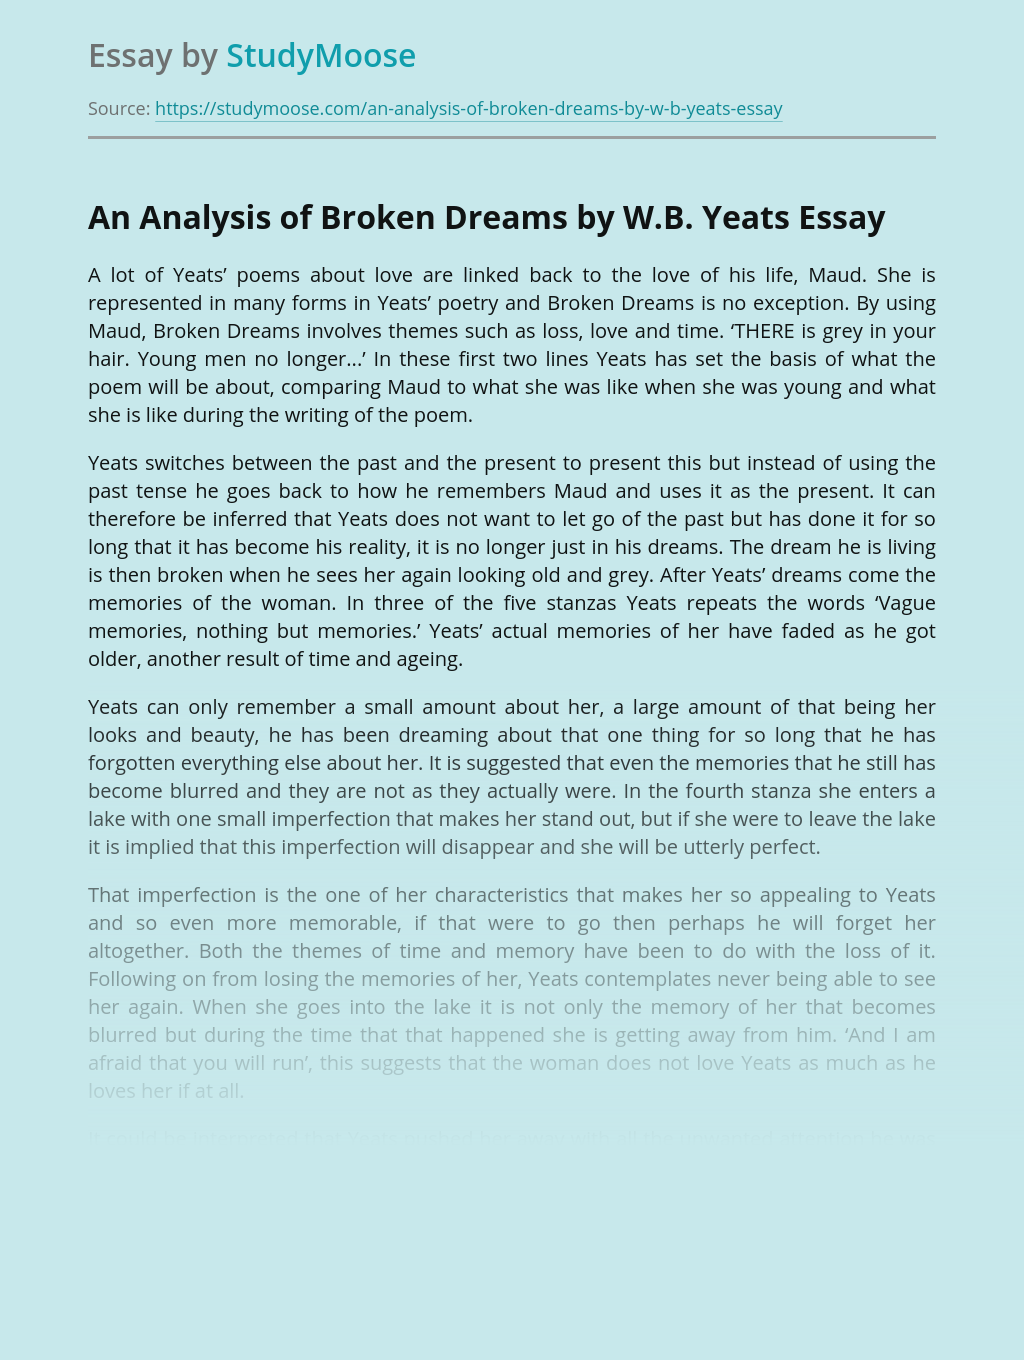 An Analysis of Broken Dreams by W.B. Yeats